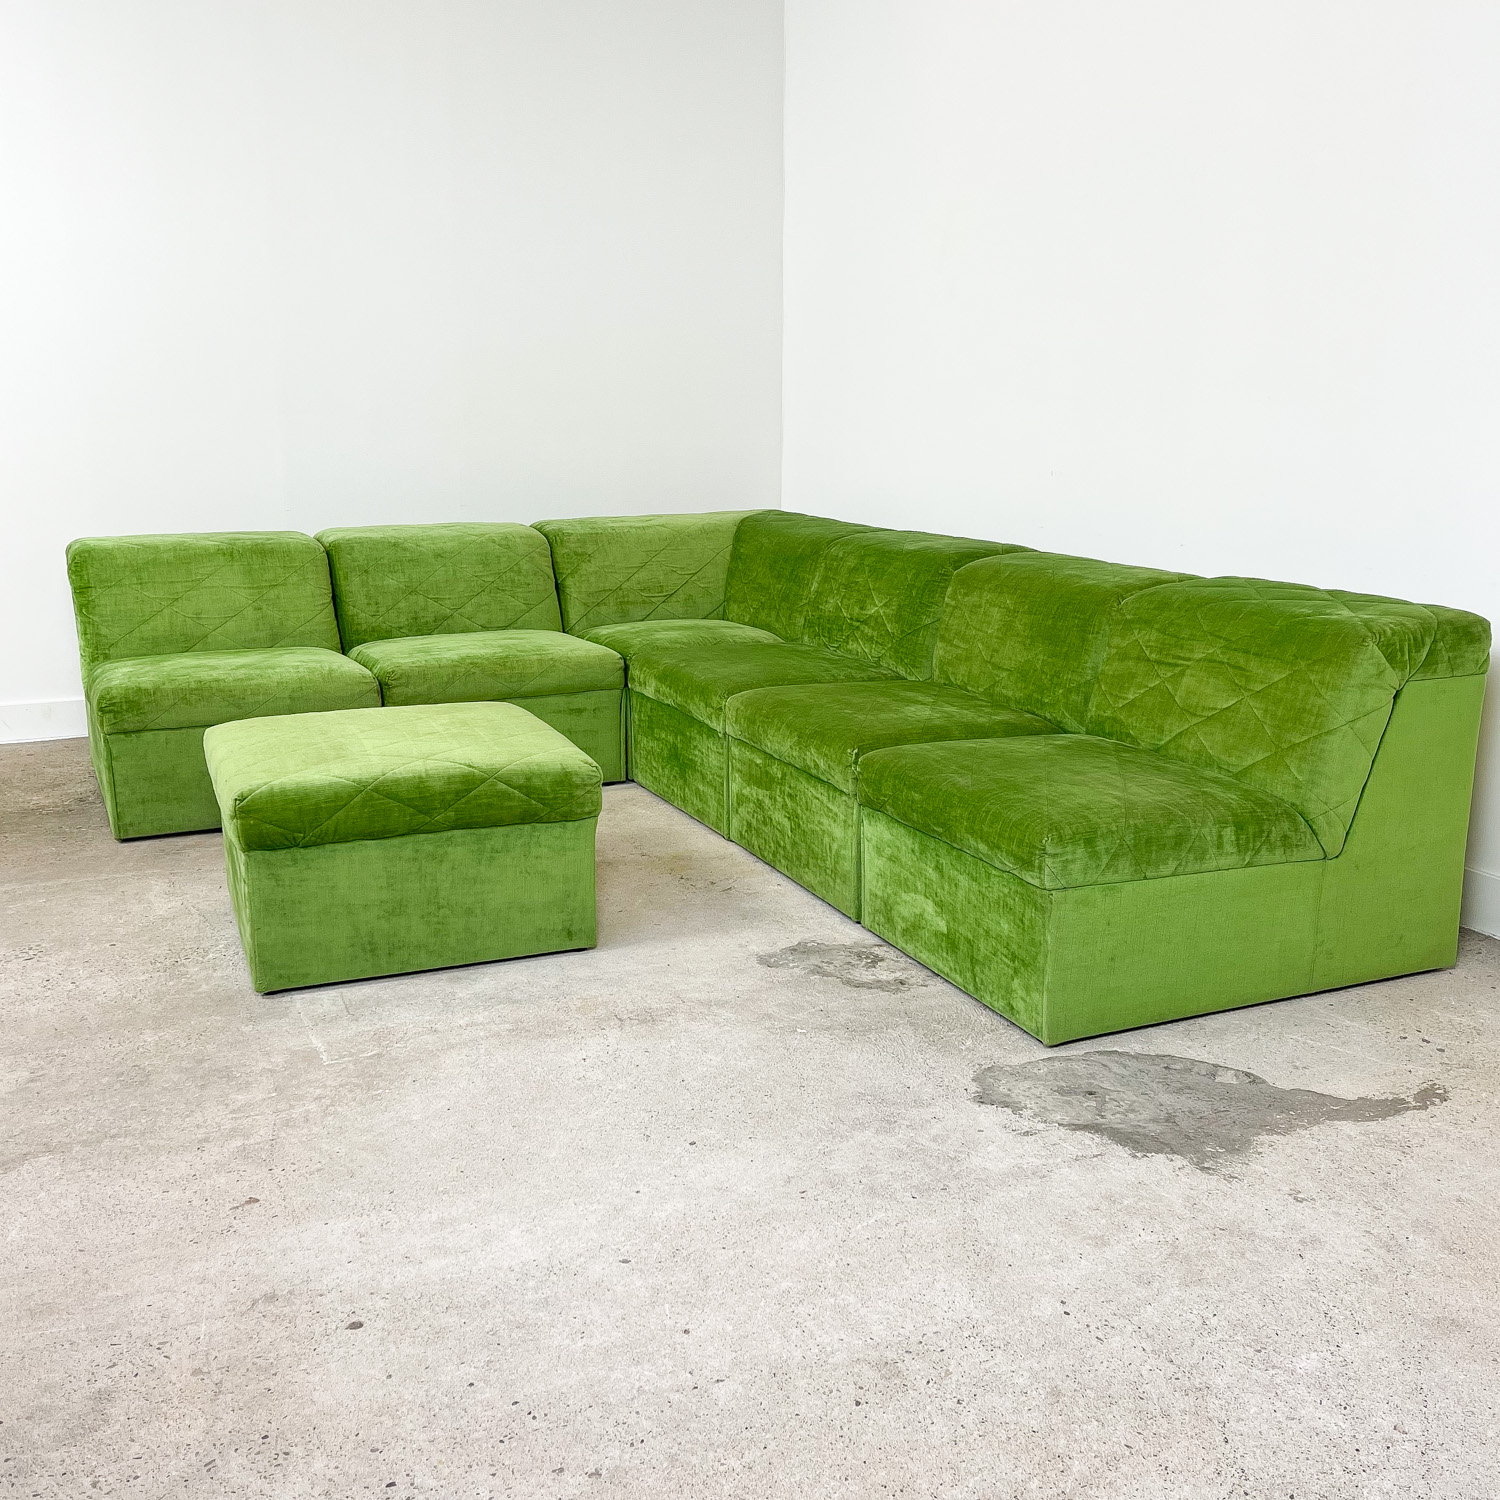 Vintage elemental sofa by Laauser light green velvet